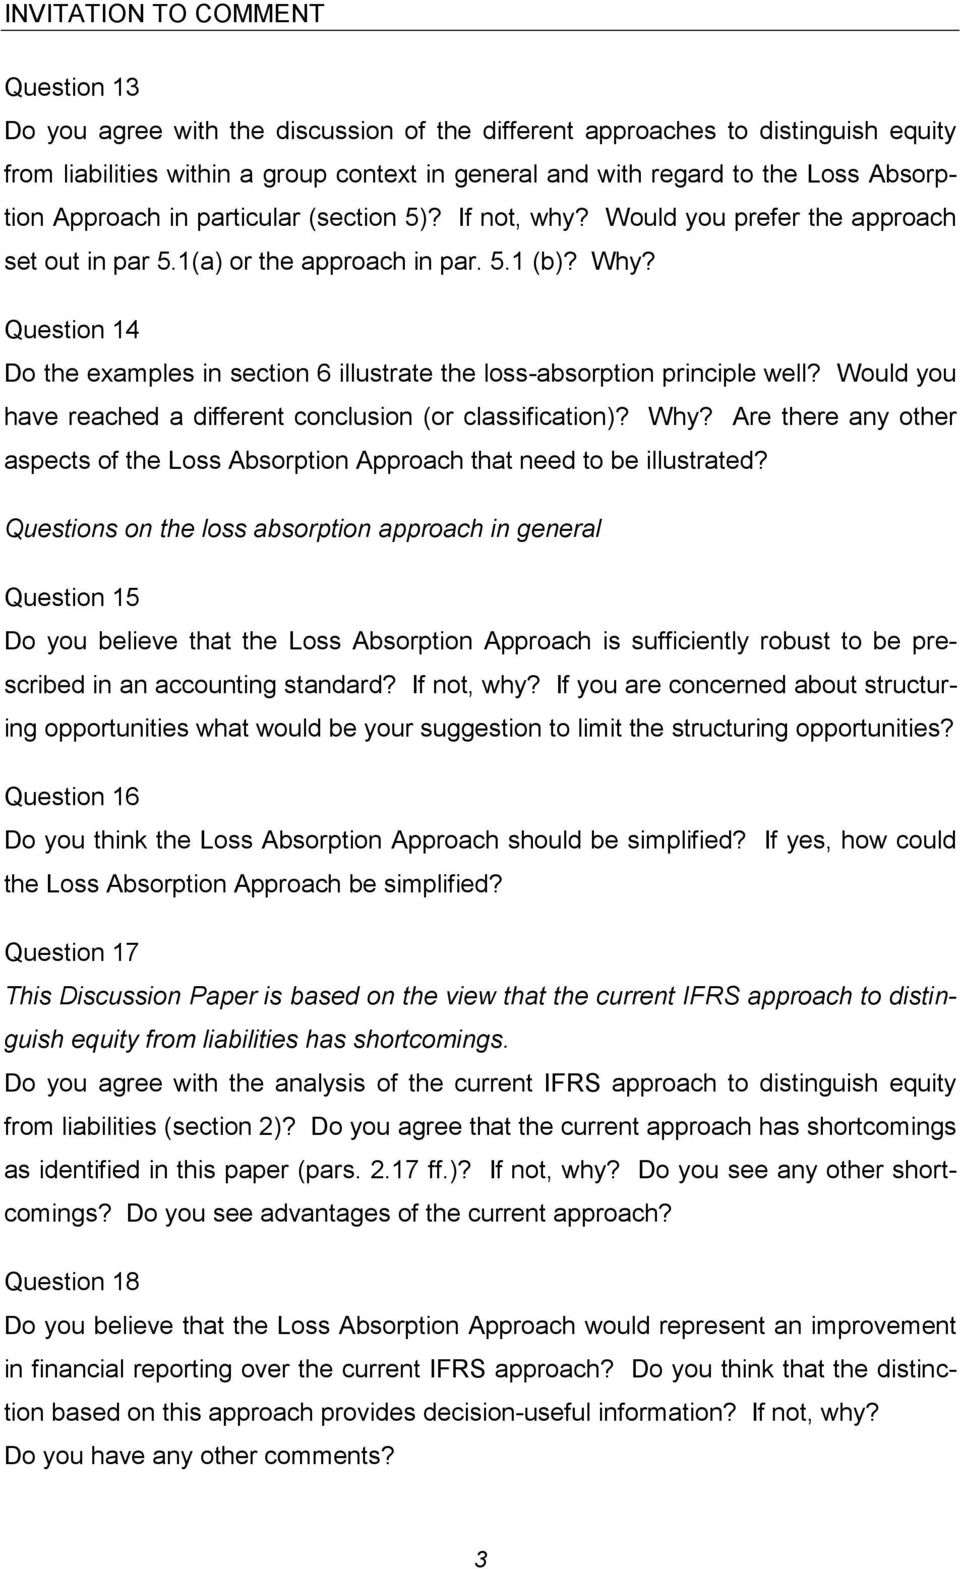 Question 14 Do the examples in section 6 illustrate the loss-absorption principle well? Would you have reached a different conclusion (or classification)? Why?